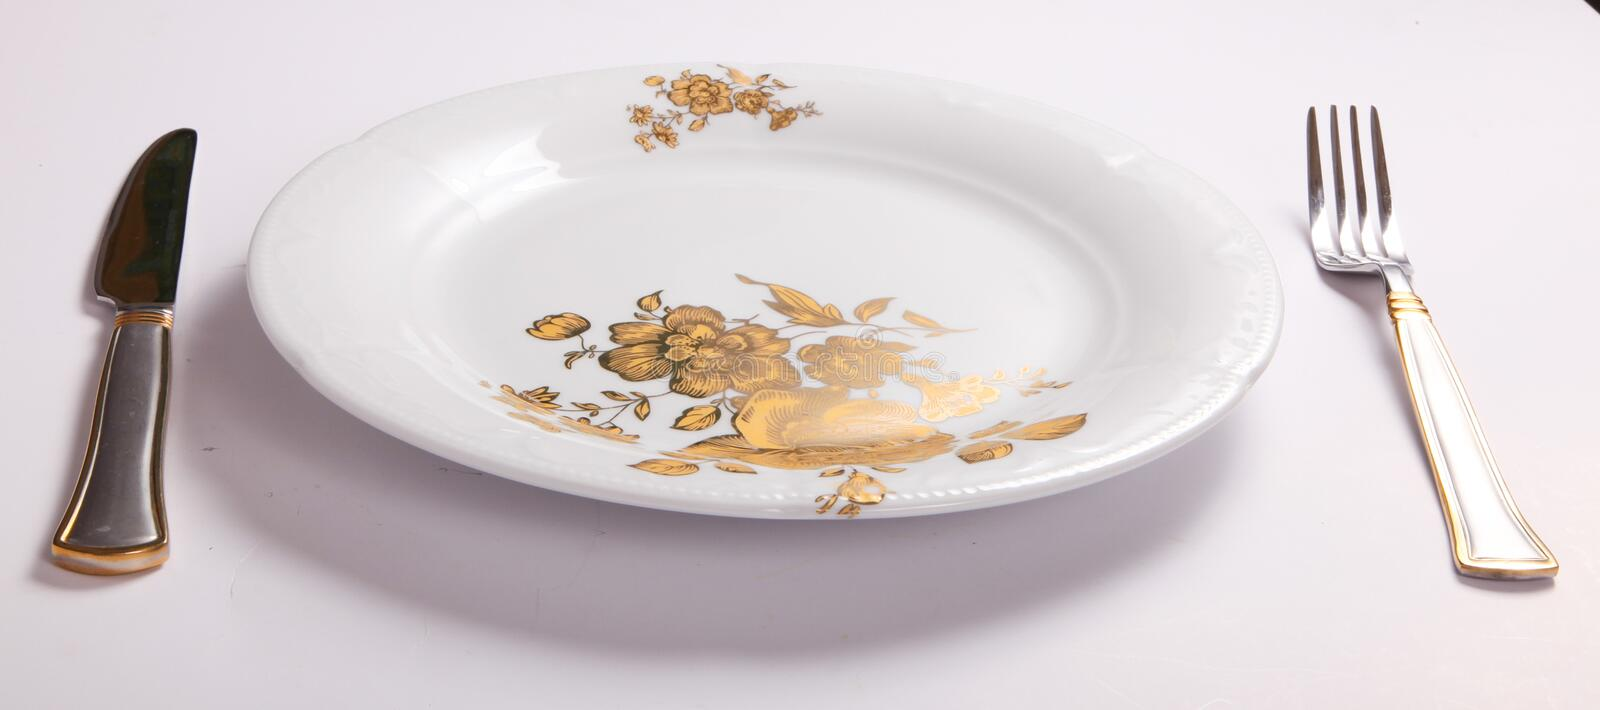 Empty Dish with Fork and knife royalty free stock photography